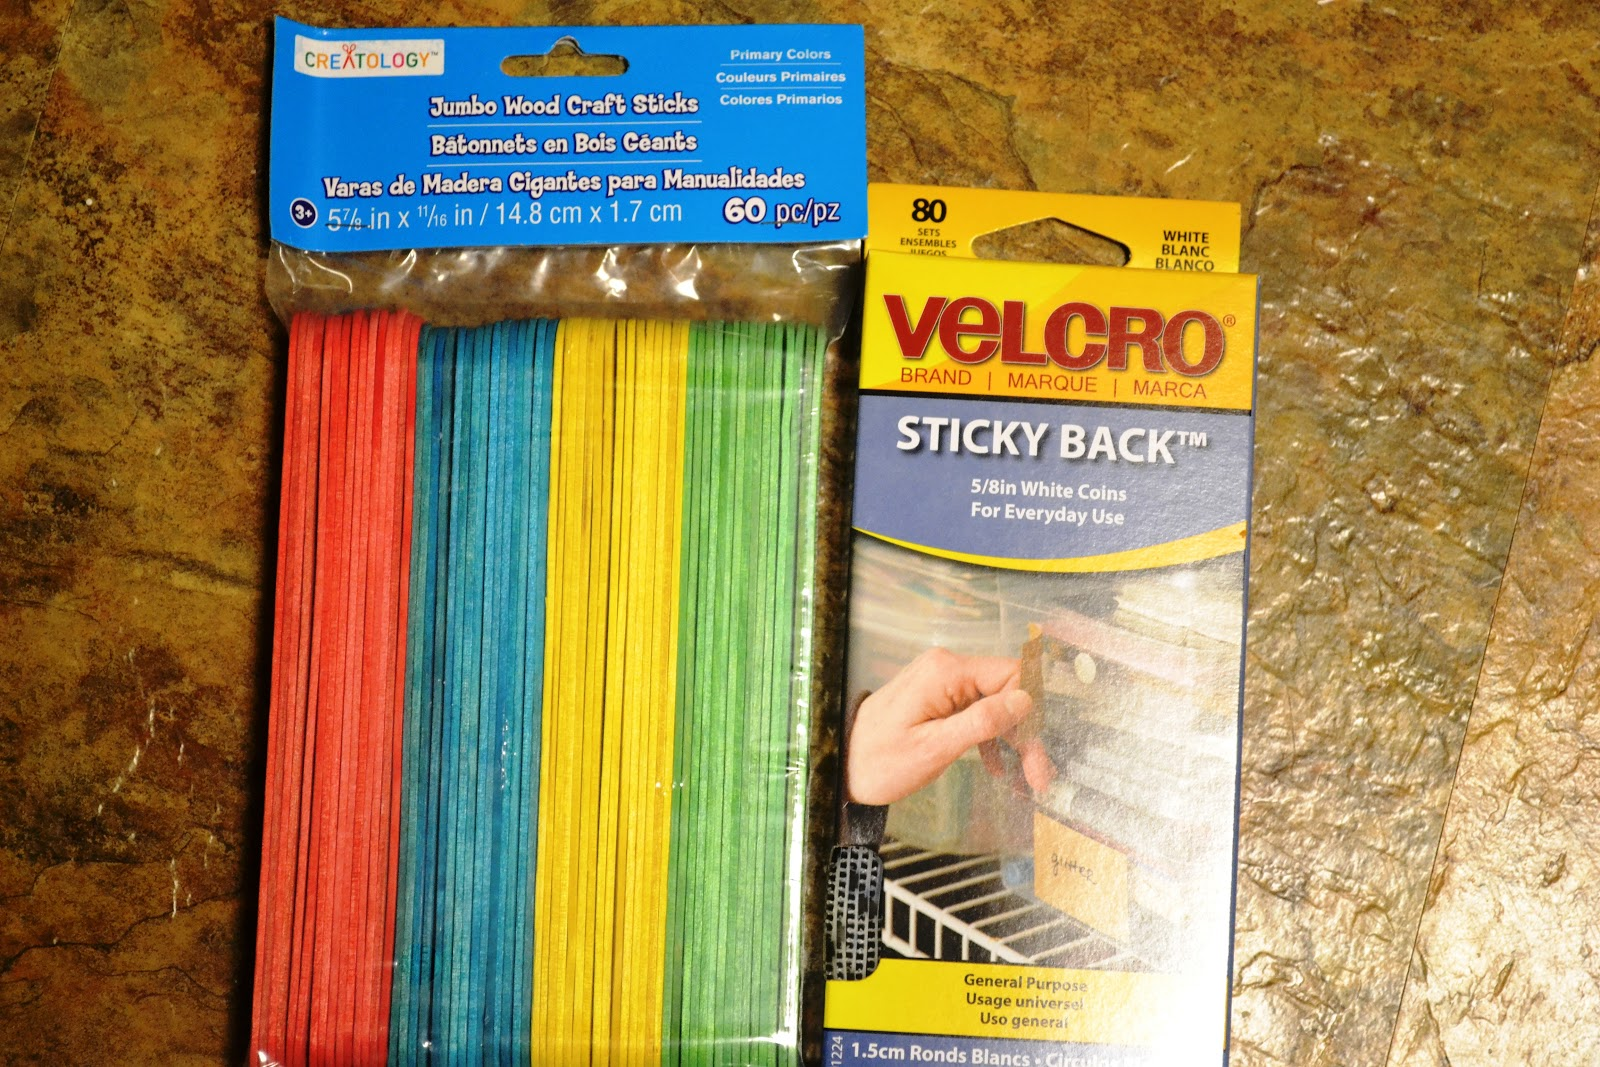 Jumbo wood craft sticks - 1 Package Of Colored Craft Sticks 1 Package Of Velcro Sticky Backed Dots